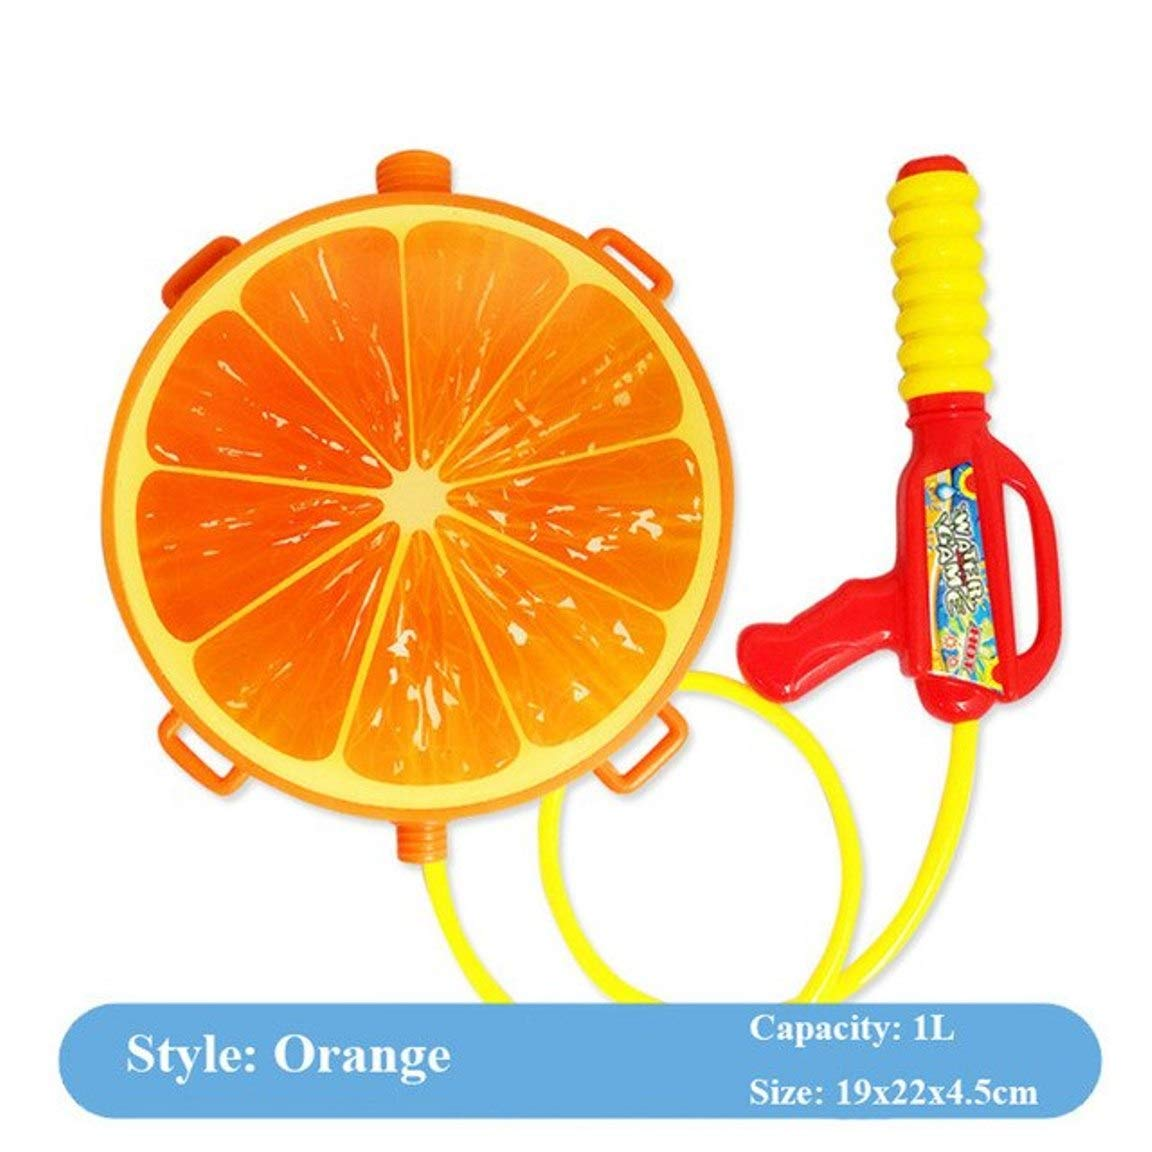 5billion 1pcs Children Water Gun Toy Cute Orange Toy Guns Air Pressure Water Sprayer for Kids Boys Beach Toy